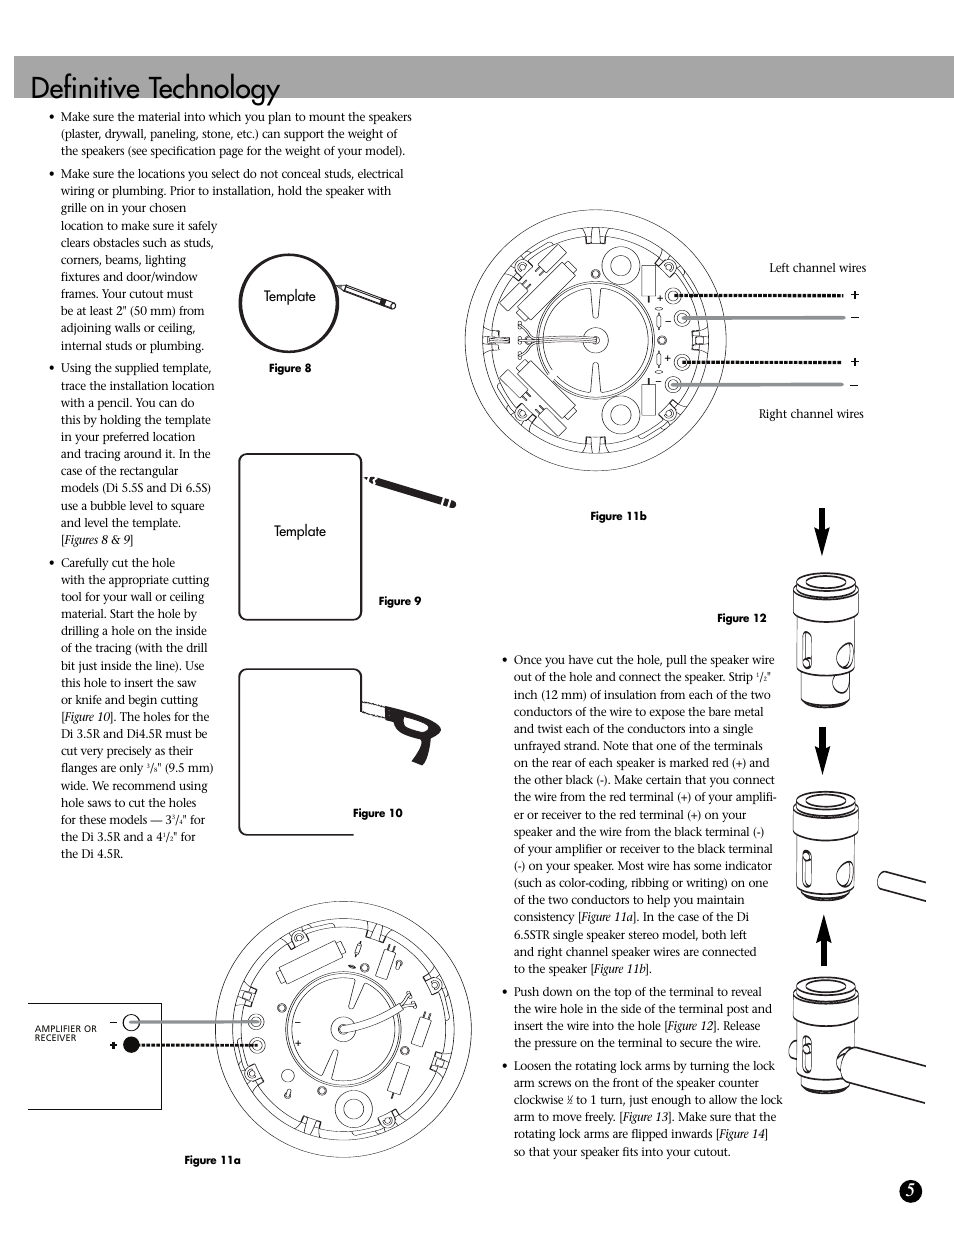 Definitive technology | Definitive Technology DI SERIES 3.5R User Manual |  Page 5 / 8